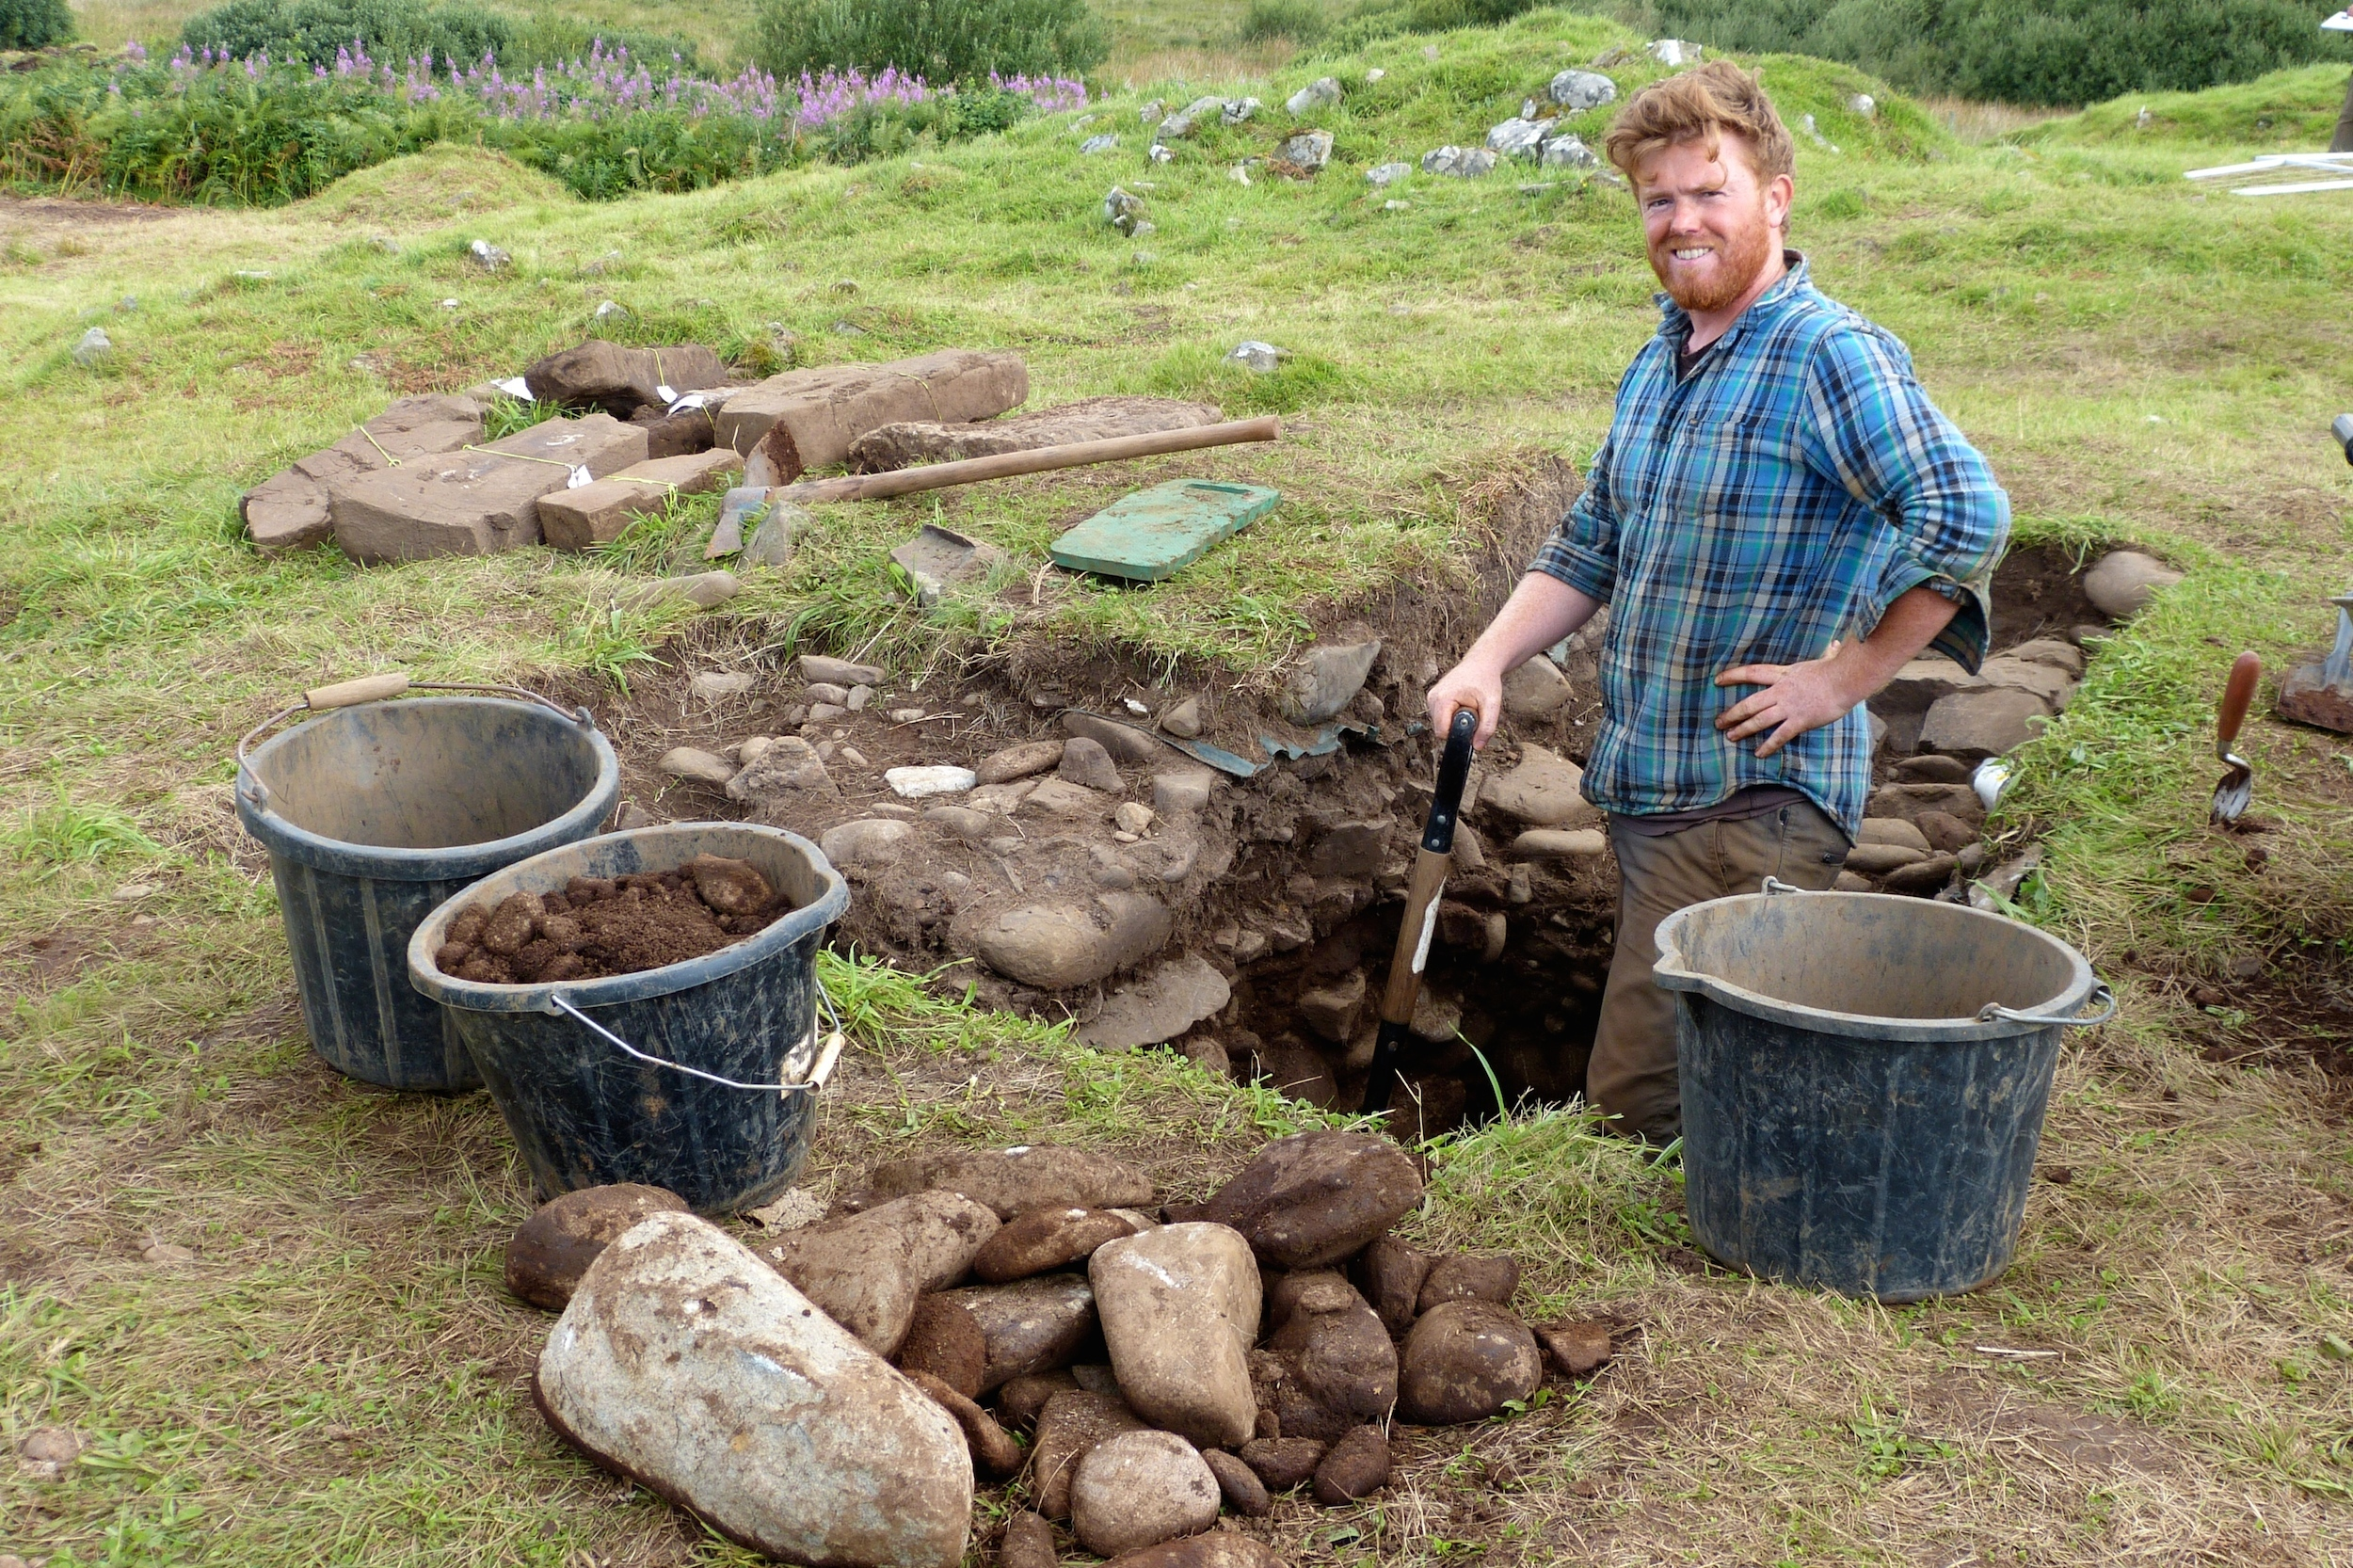 Archaeologist Paul Murtagh excavating the Bronze Age burial cist in which the remains of at least two bodies were found